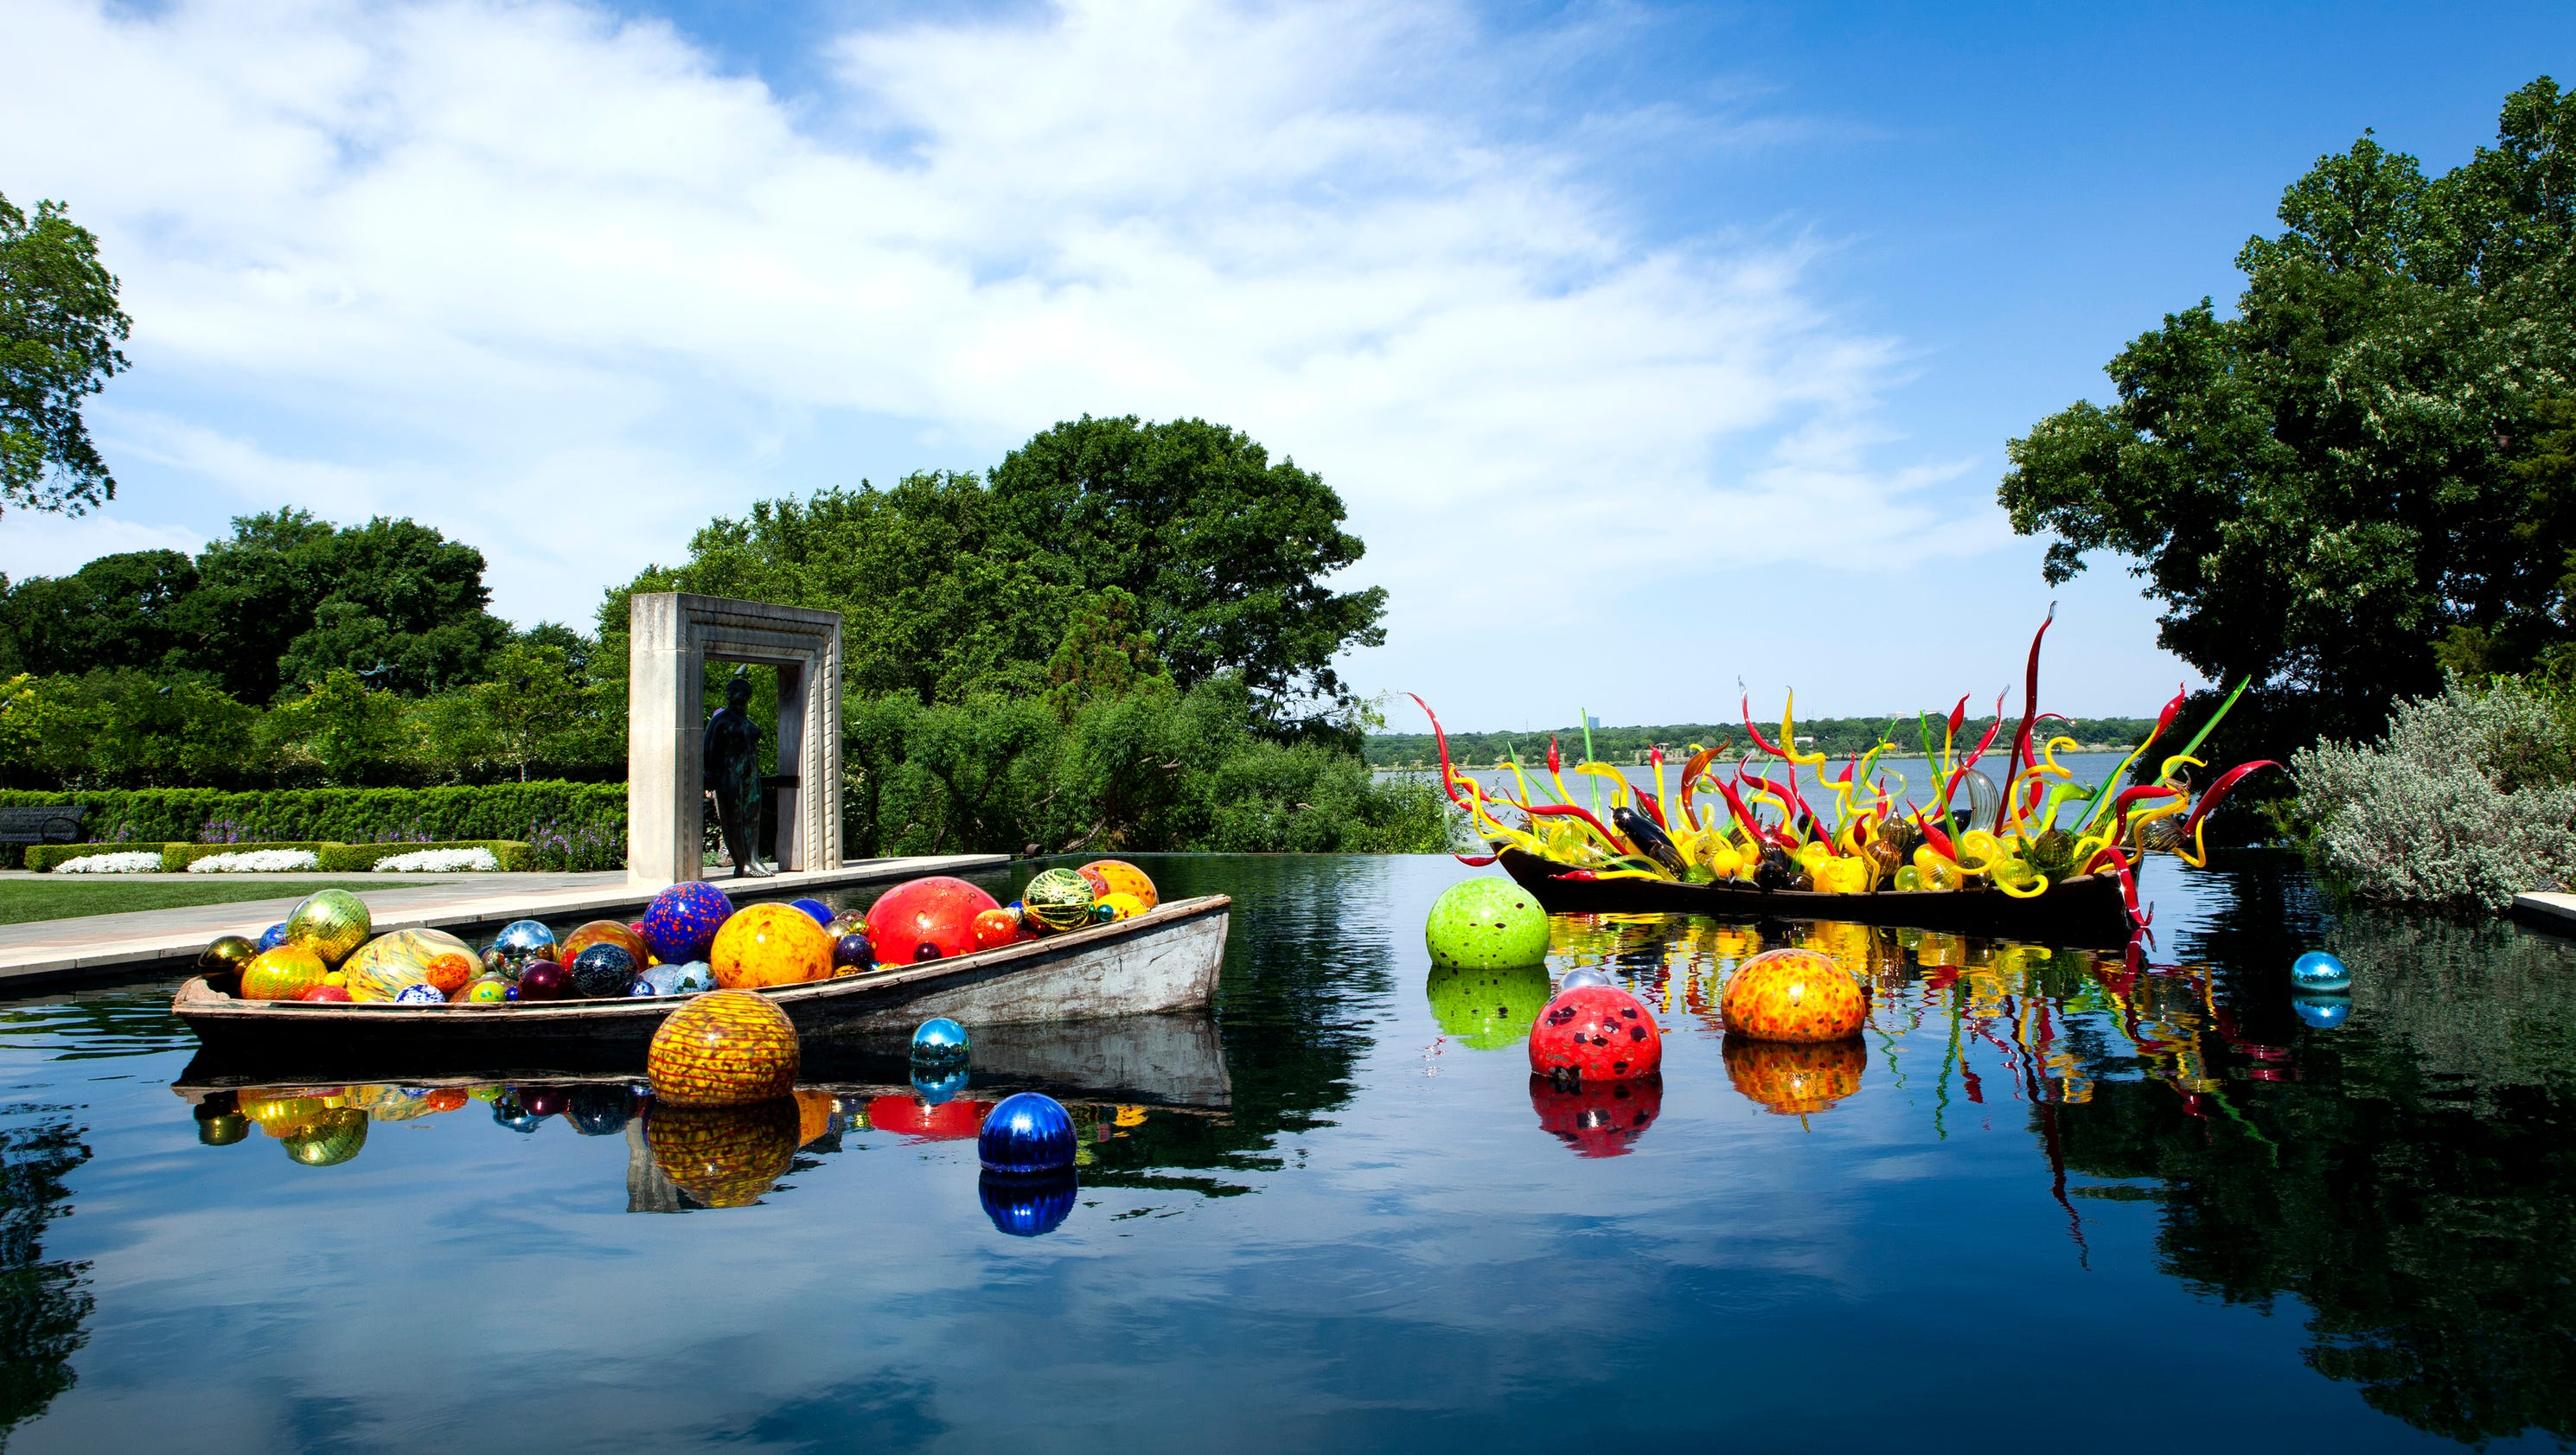 biltmore estate opens dale chihuly exhibit in may